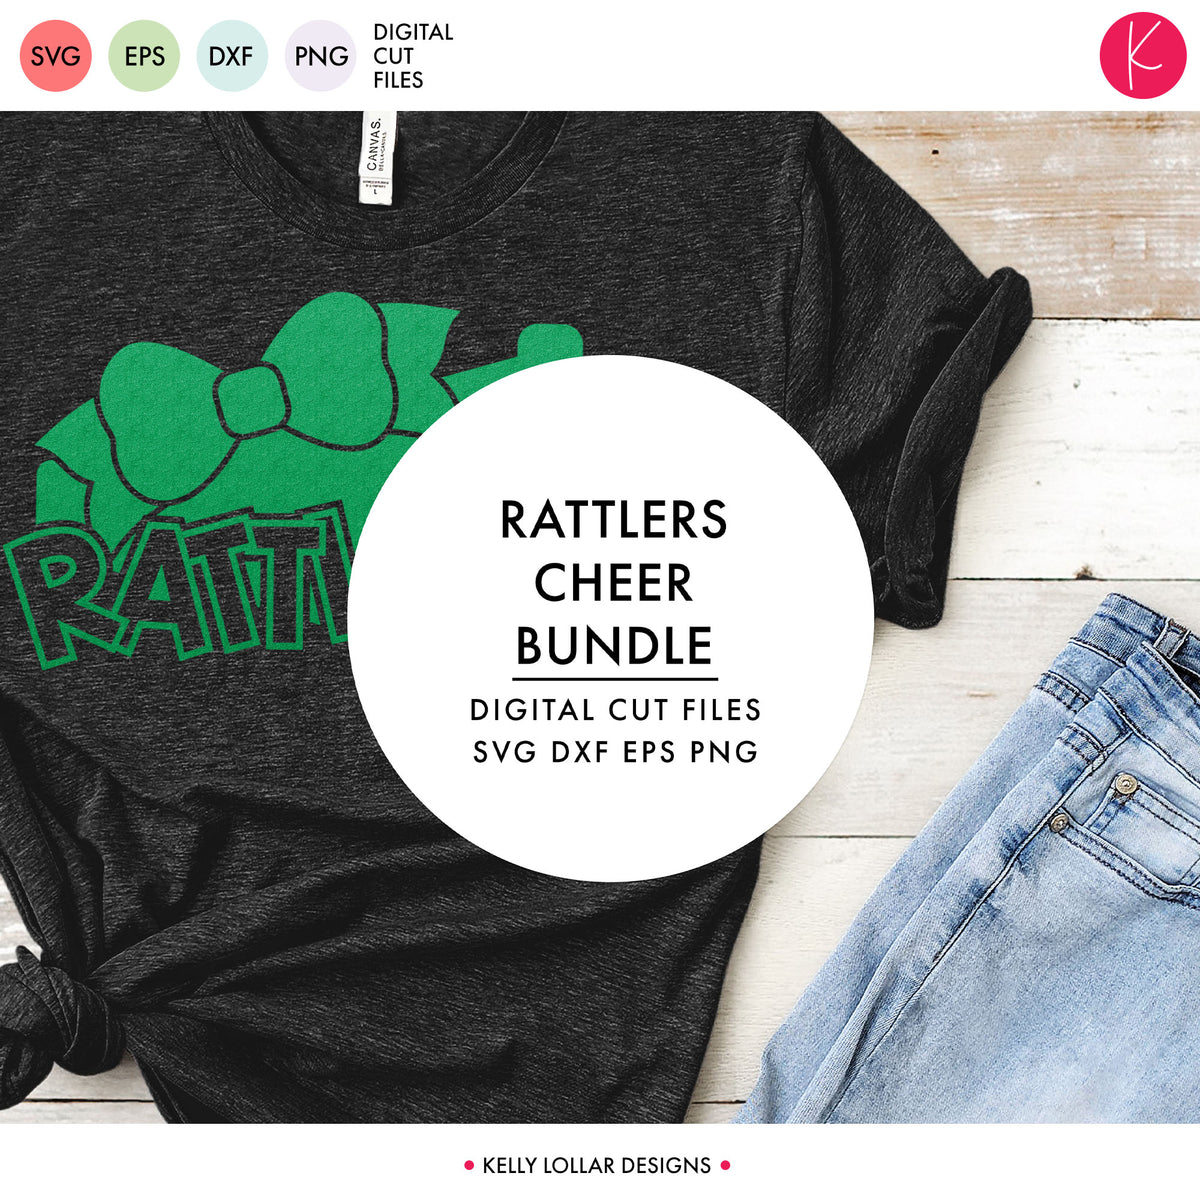 Rattlers Cheer Bundle | SVG DXF EPS PNG Cut Files